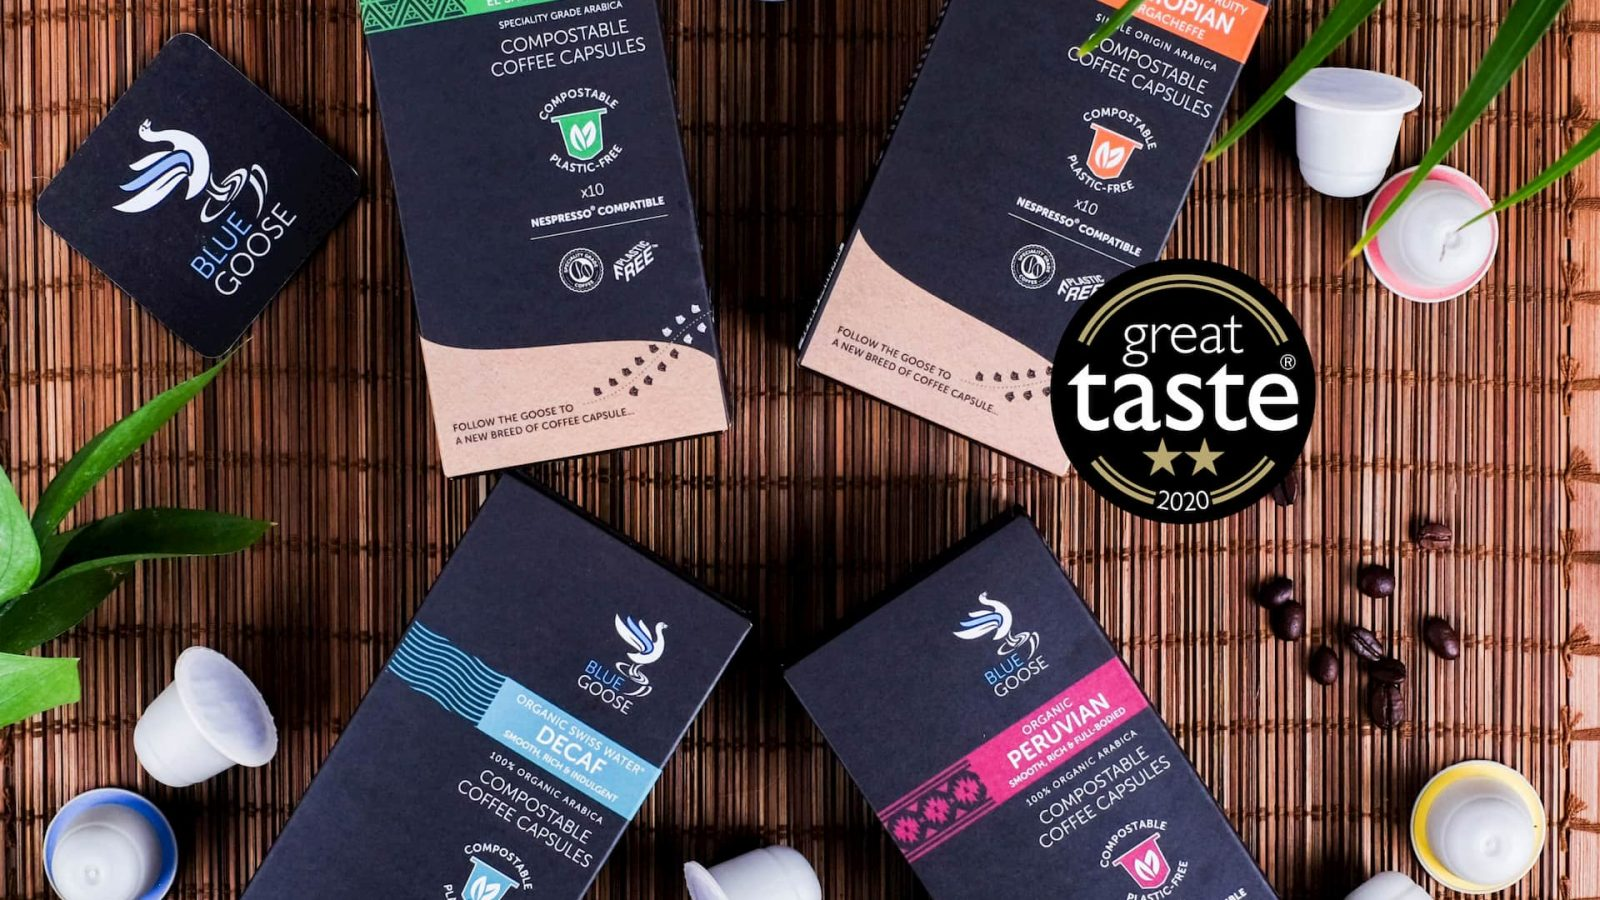 Blue Goose Eco Coffee Pod Capsules Great Taste Which Best Buy Nespresso Compatible Pods